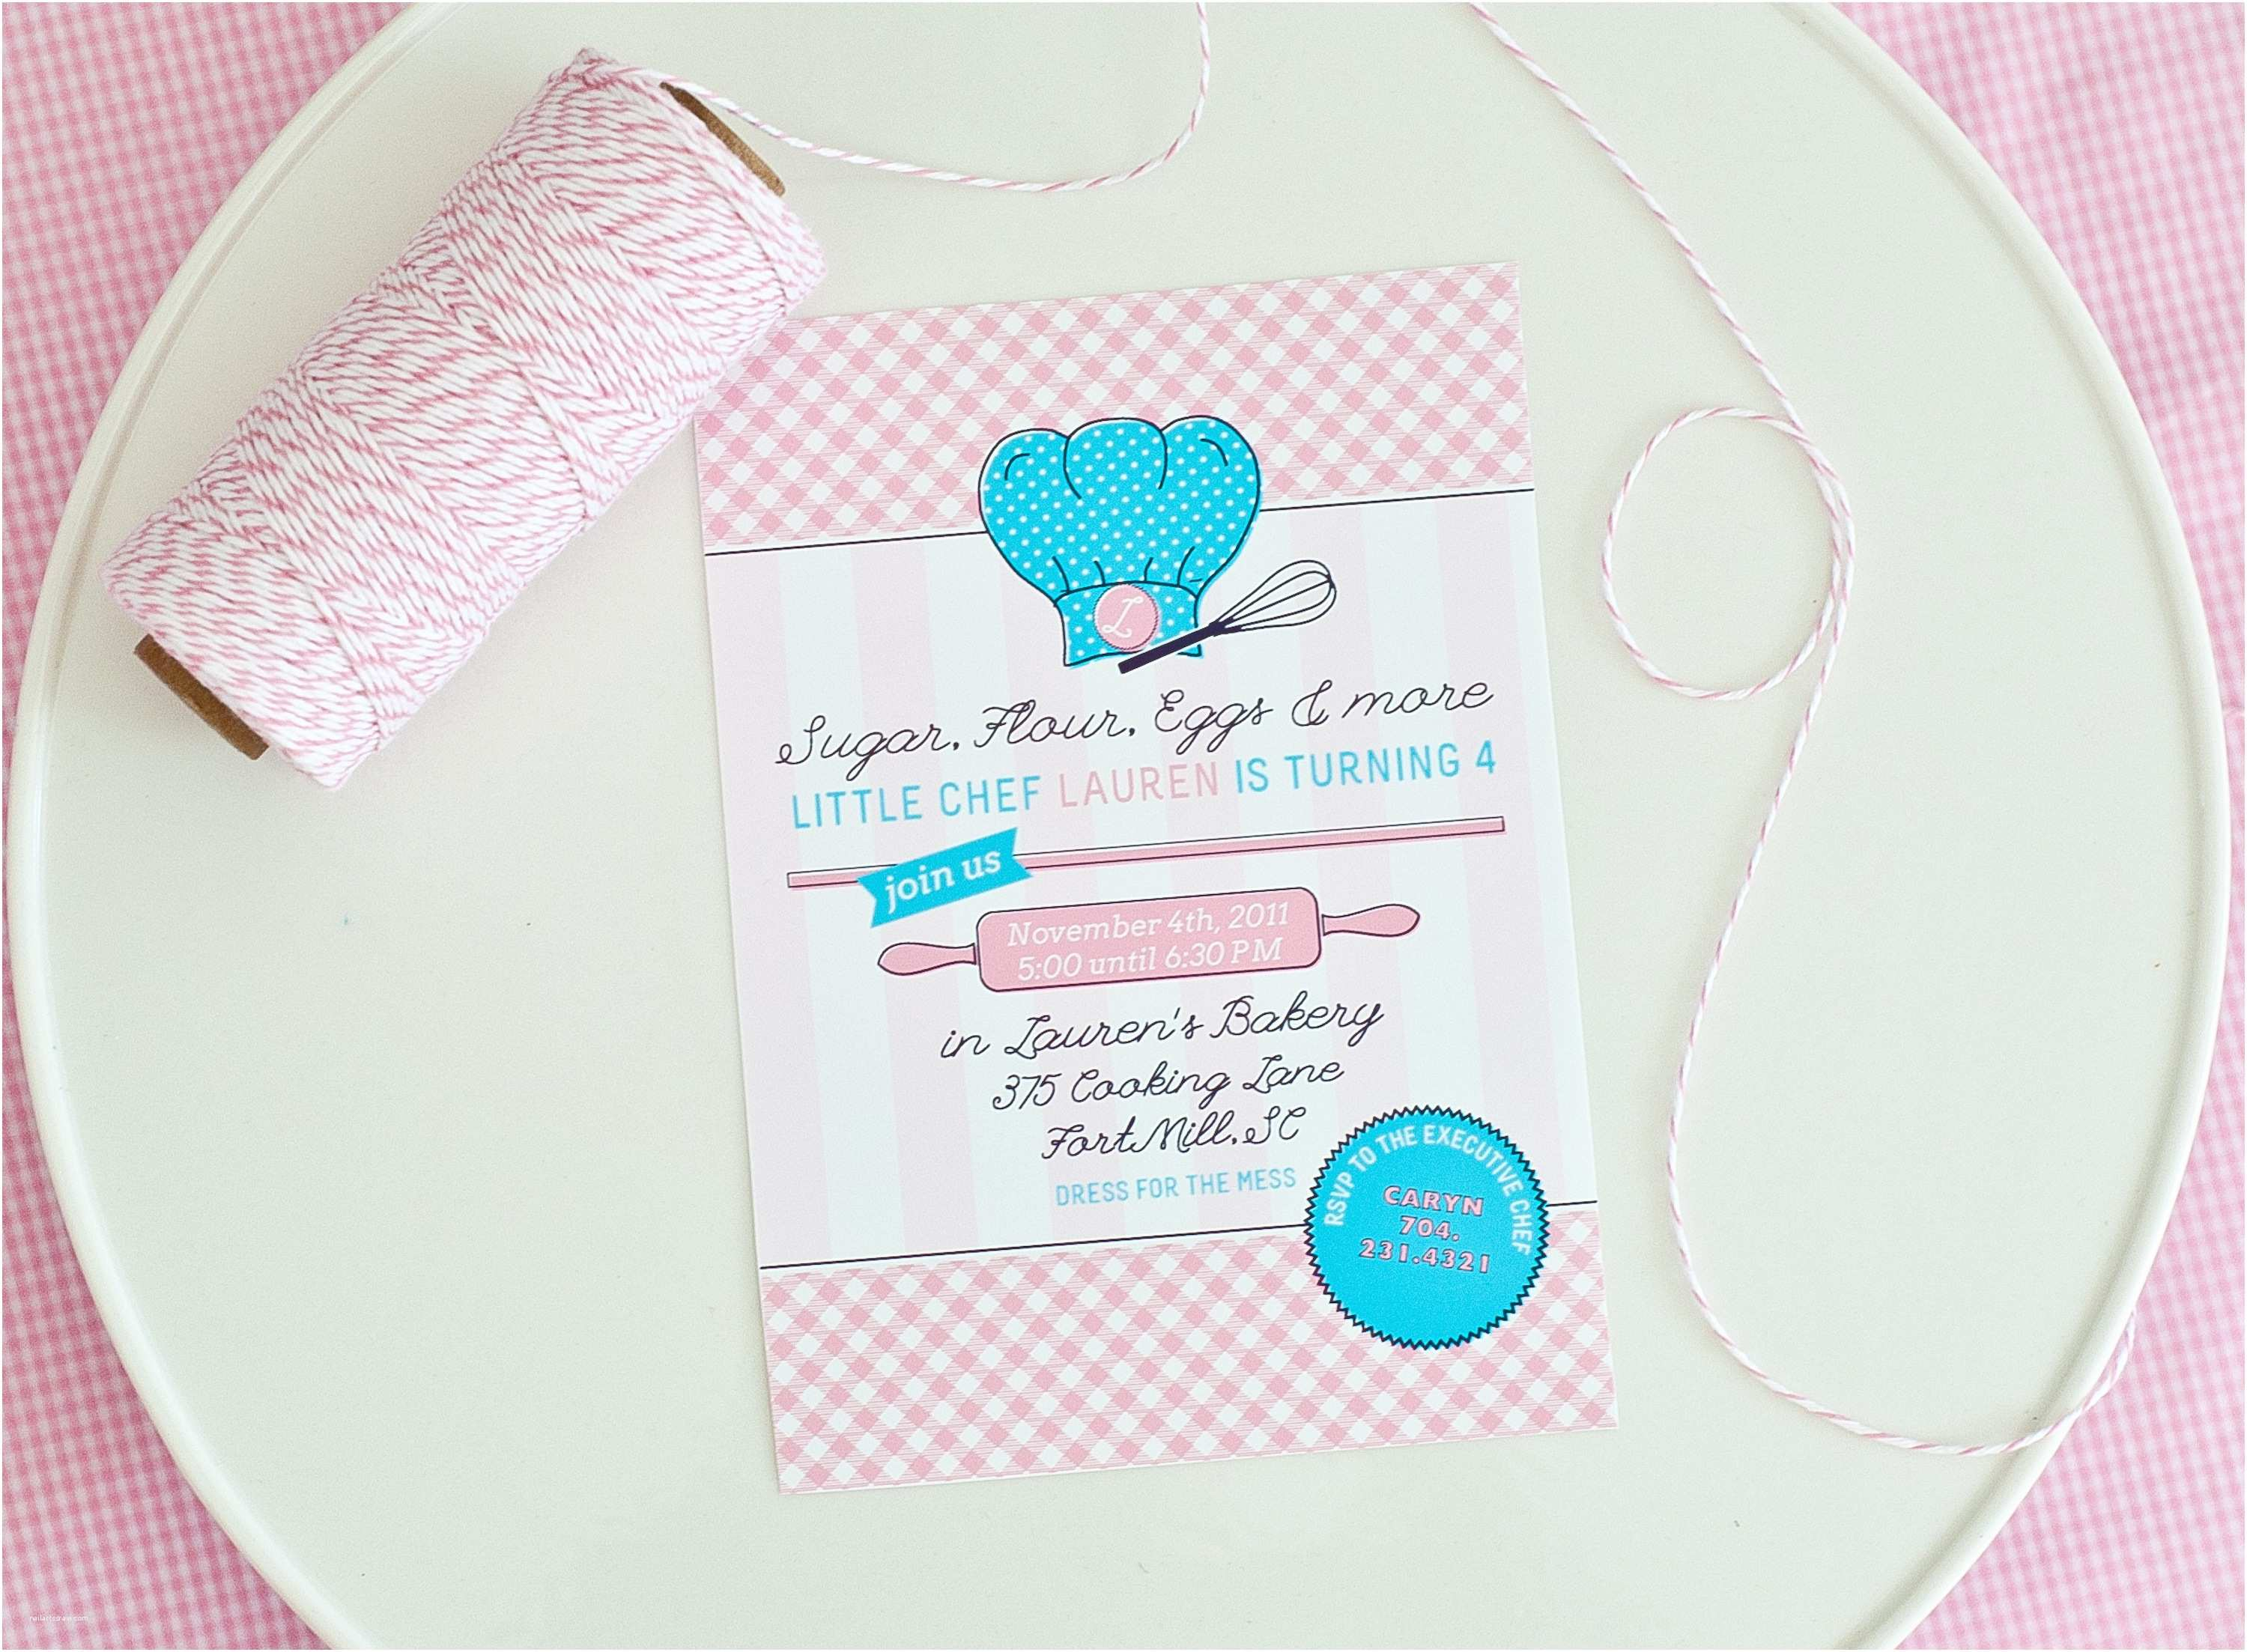 Cooking Party Invitations Lauren S Little Chef Baking Party anders Ruff Custom